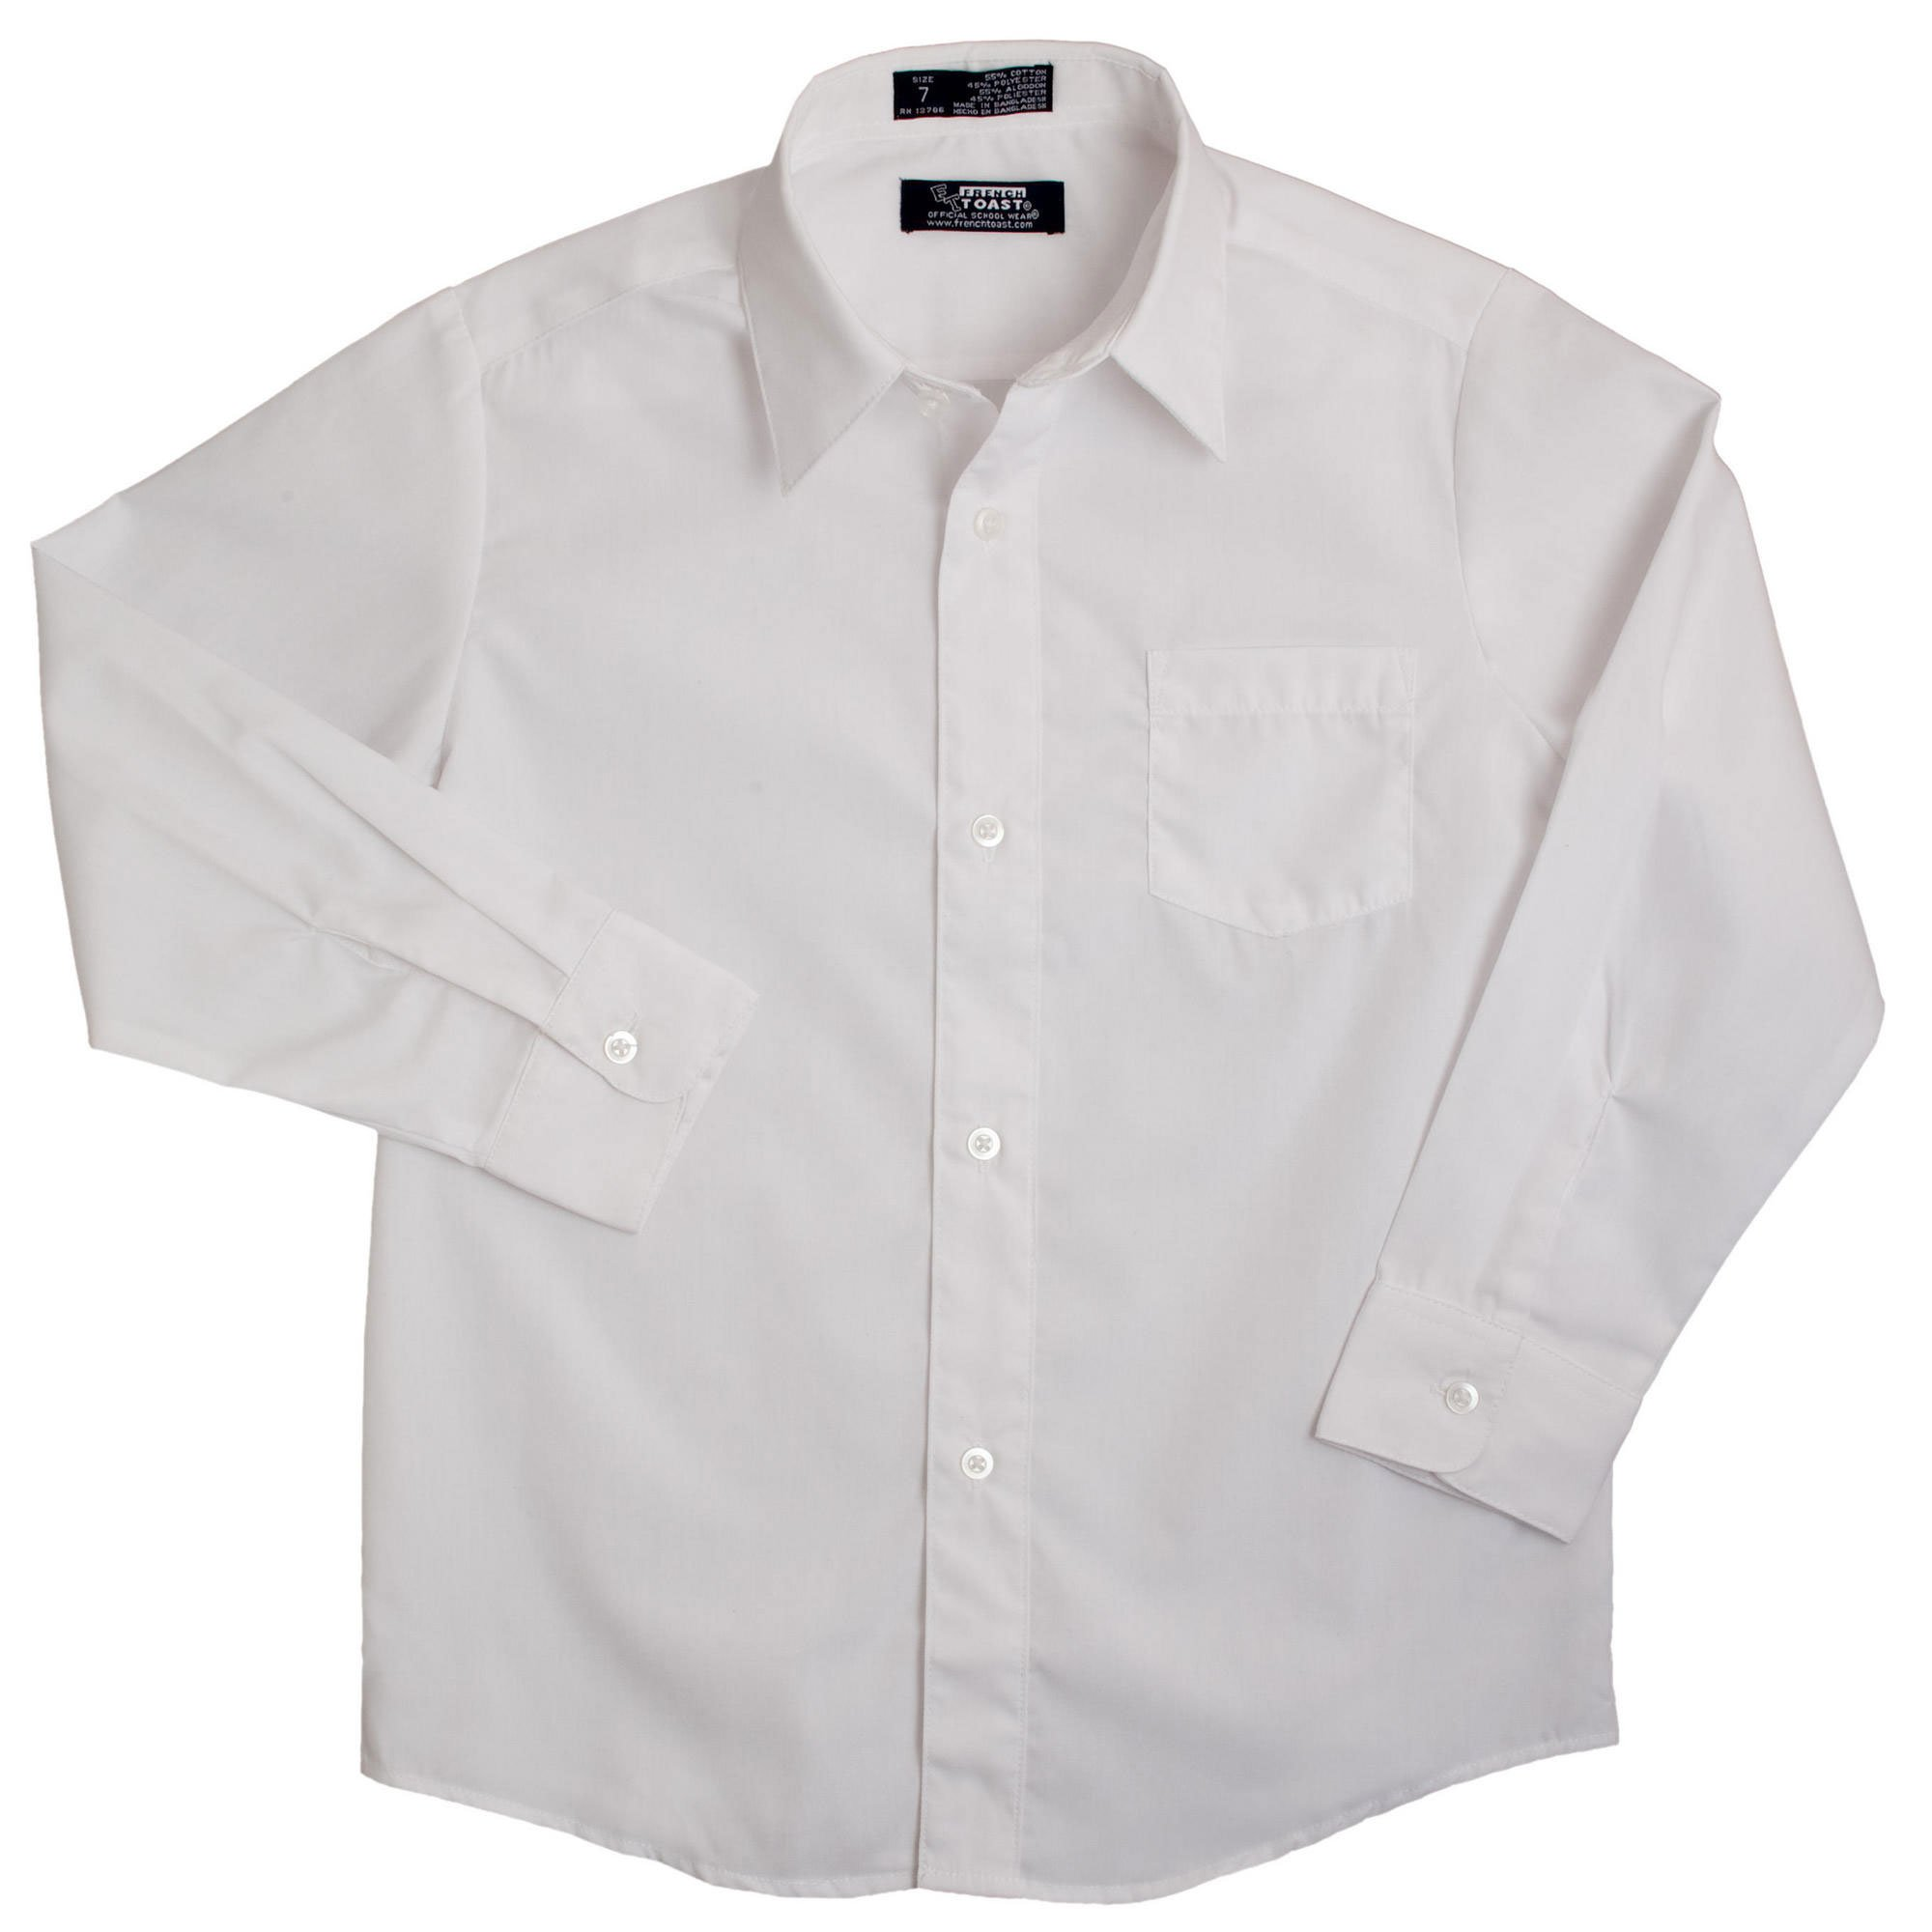 French Toast School Uniform Boys Long Sleeve Classic Dress Shirt, White, 8